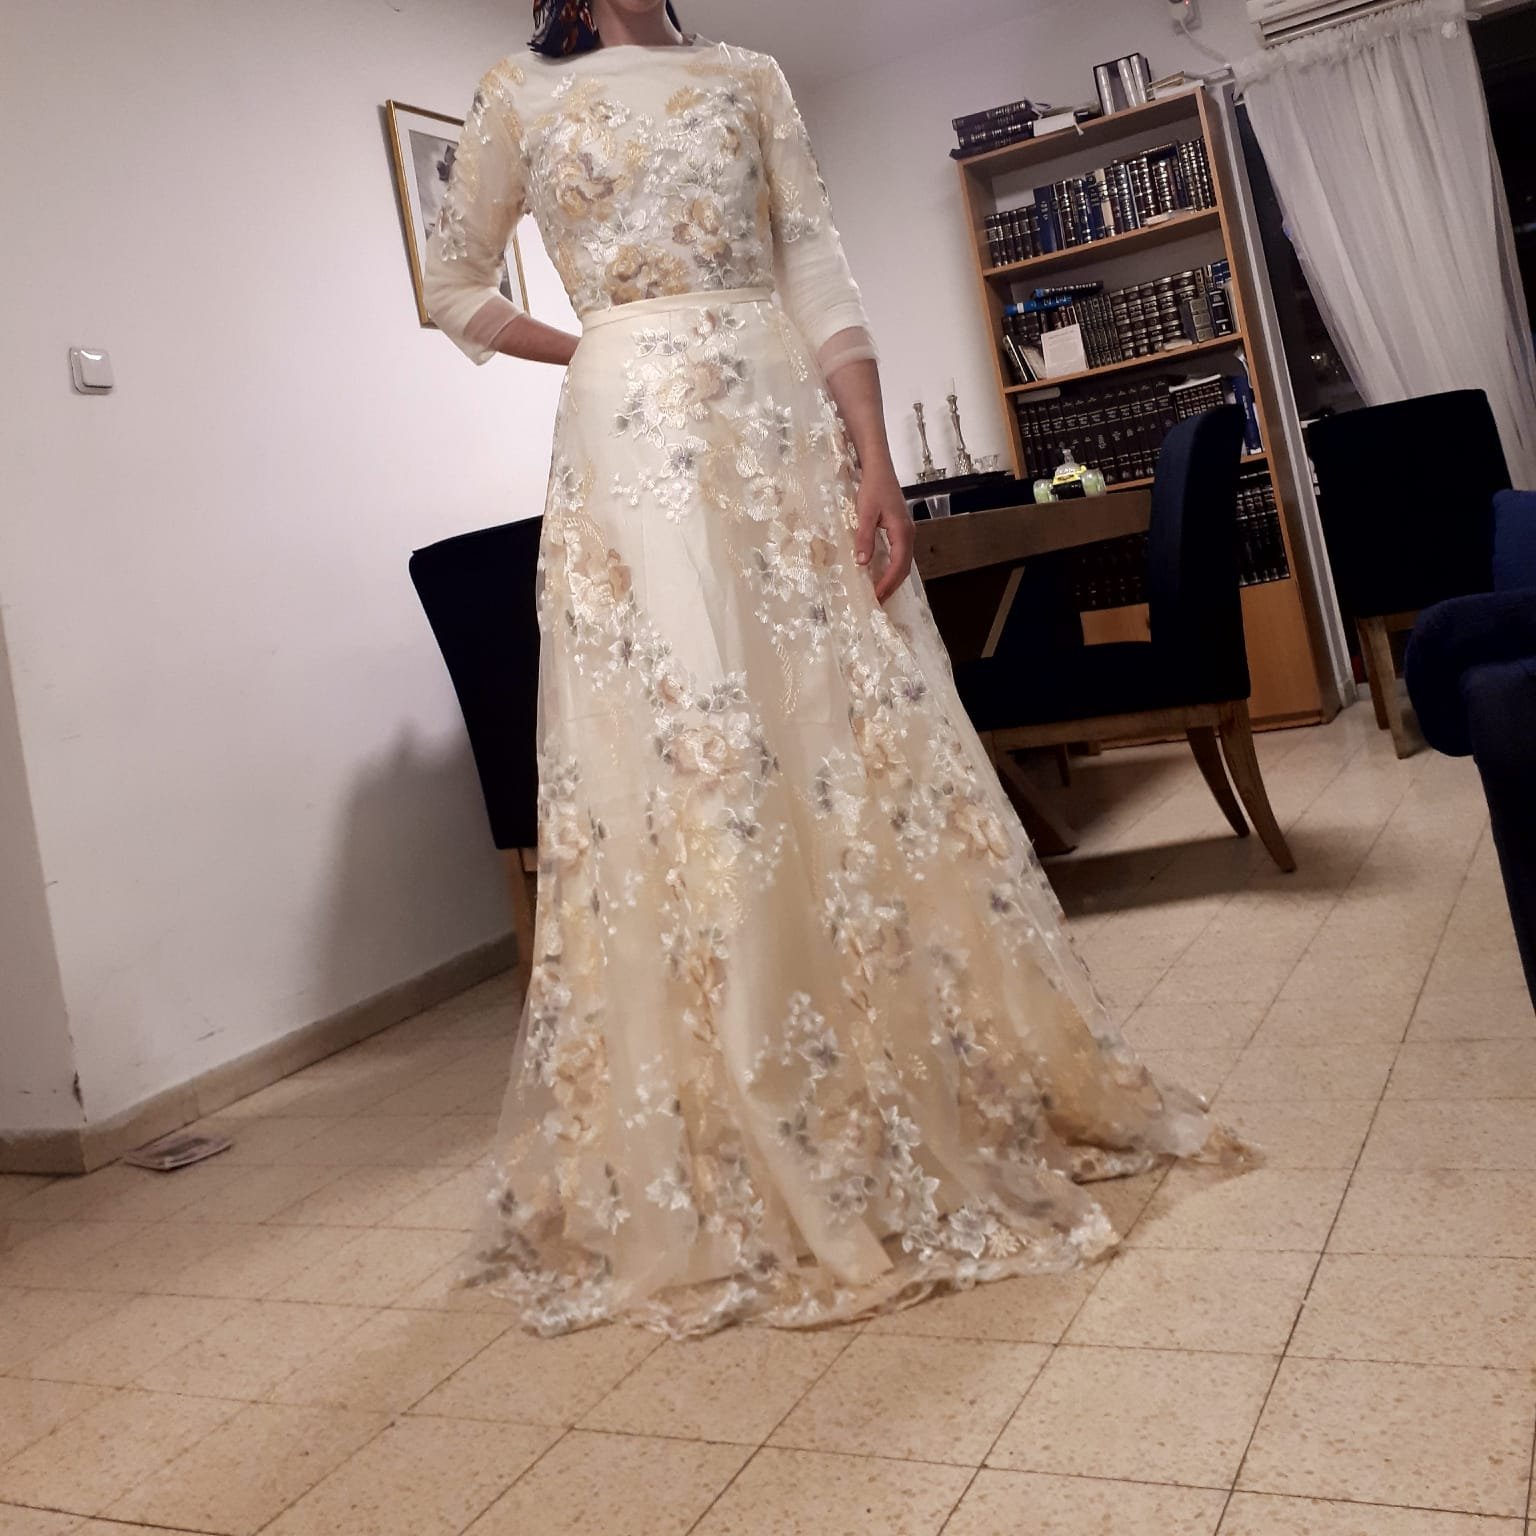 Image 3 - Floral Prom Dresses Walk Beside You Lace 3/4 Sleeves A line Champagne Belt Empire Waist Long Evening Gowns Vestido De Formatura-in Prom Dresses from Weddings & Events